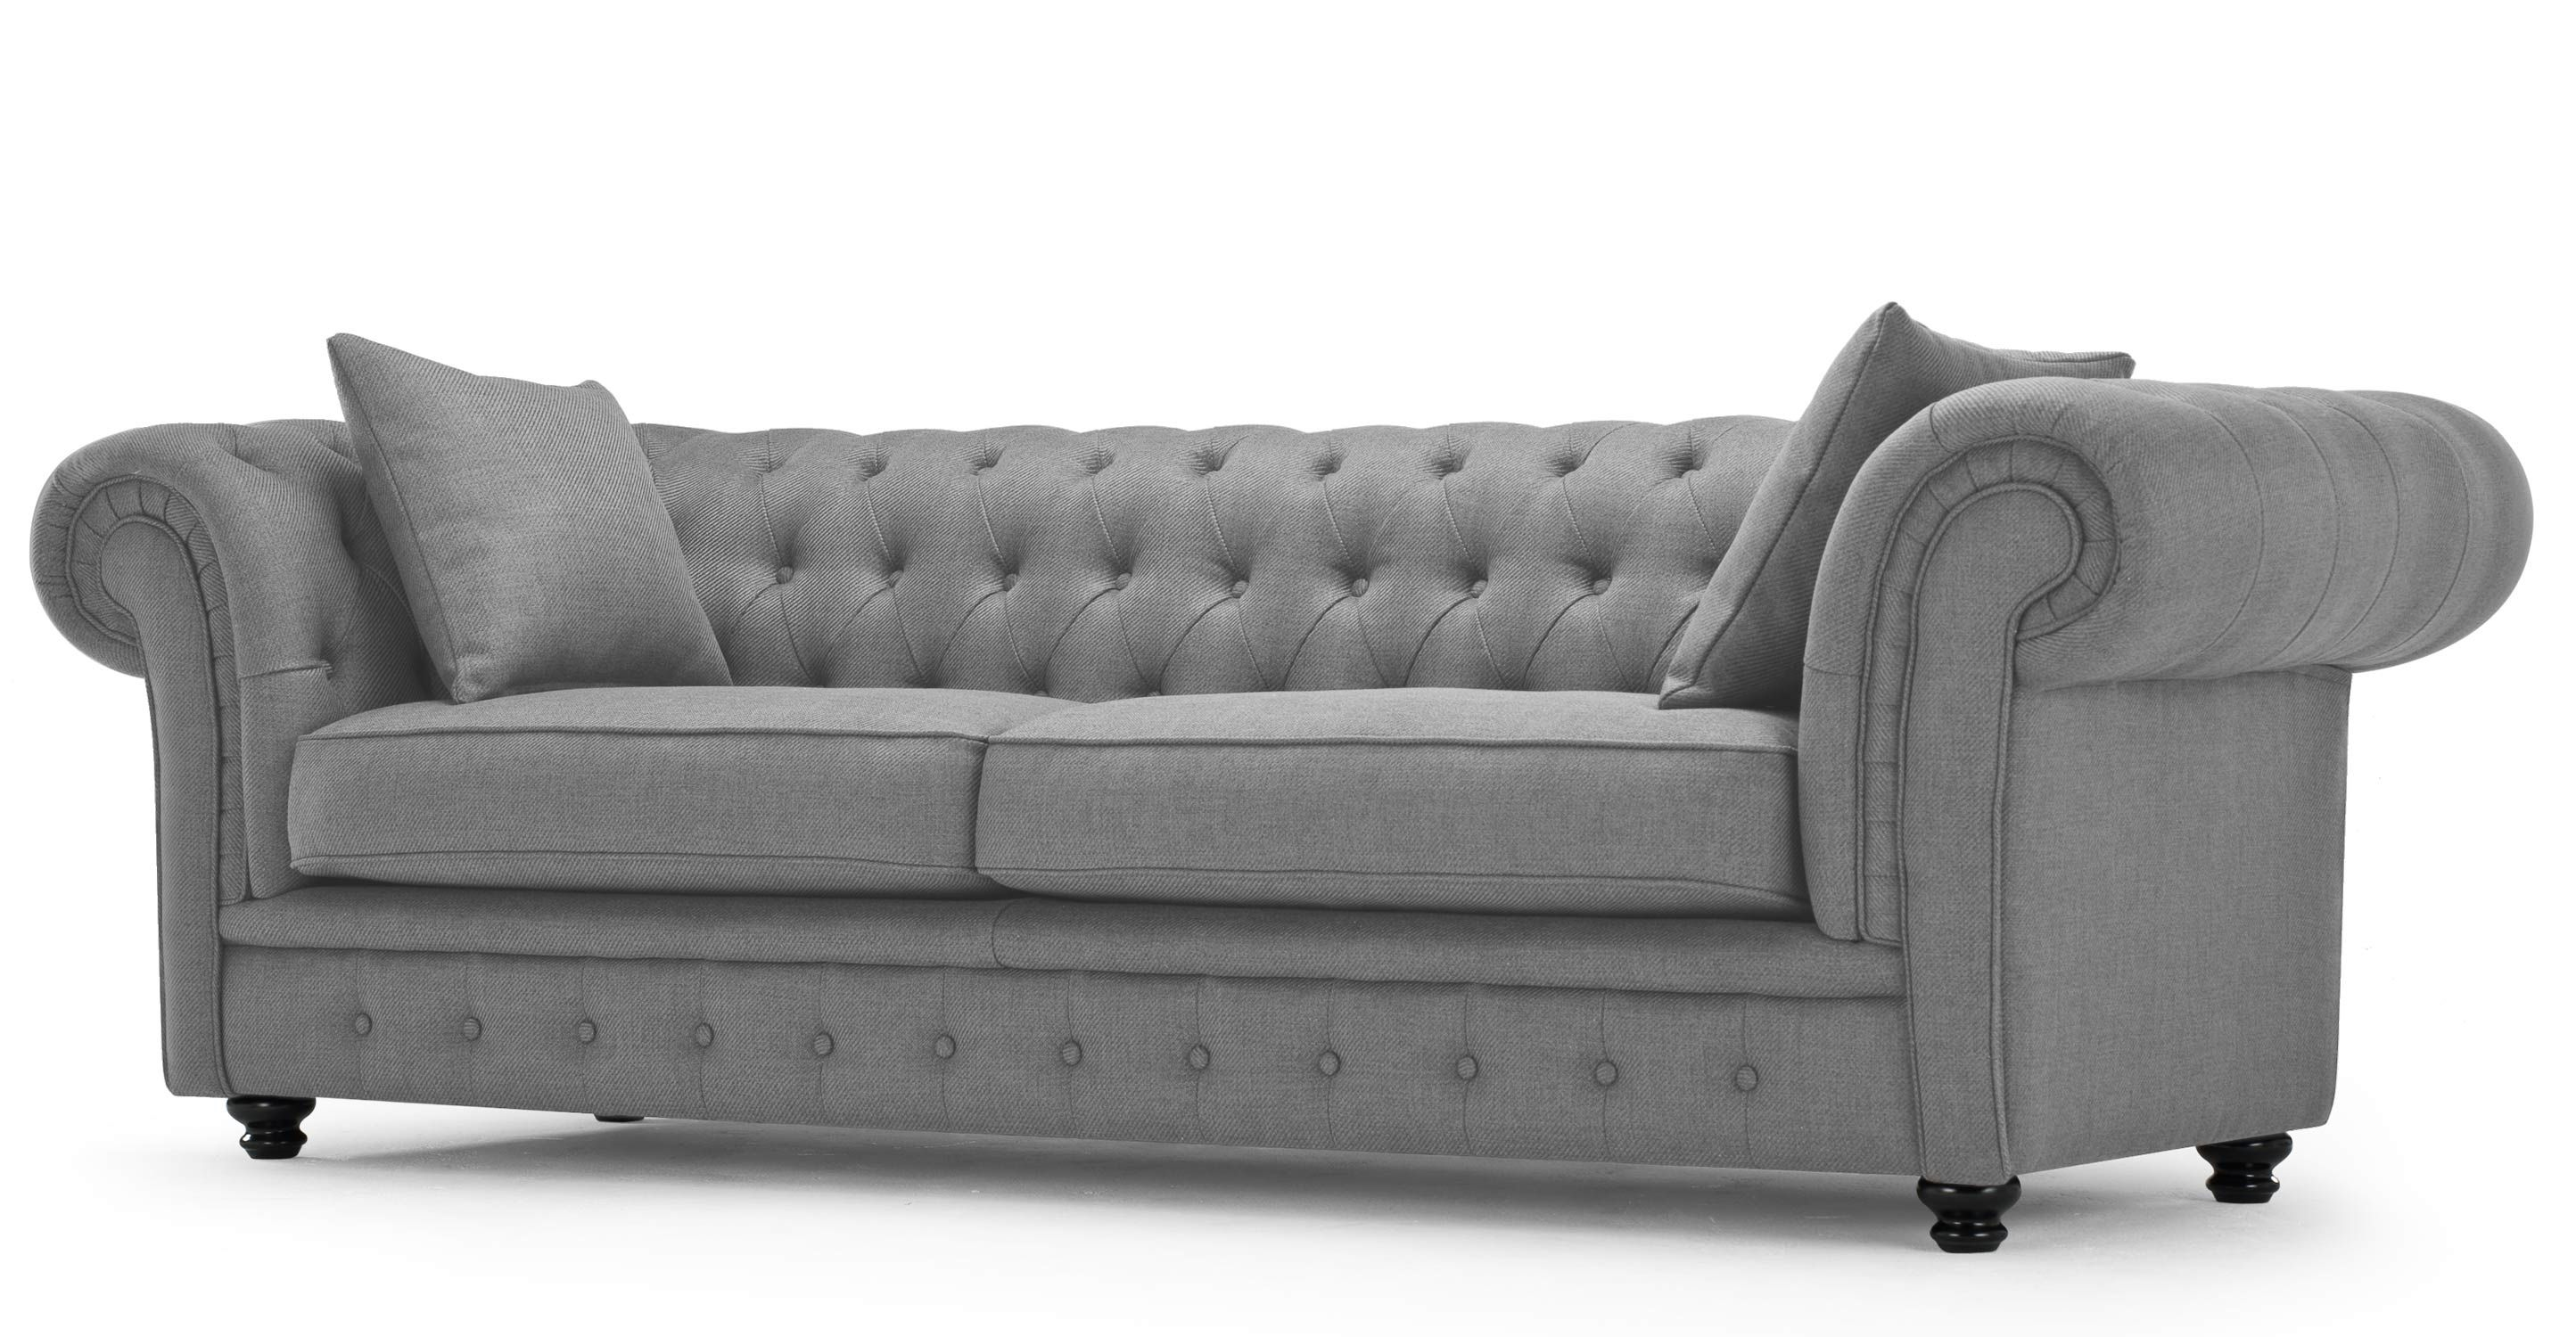 Elite Möbel Sofas Made Pearl Grey Sofa Home Decoration Fabric Chesterfield